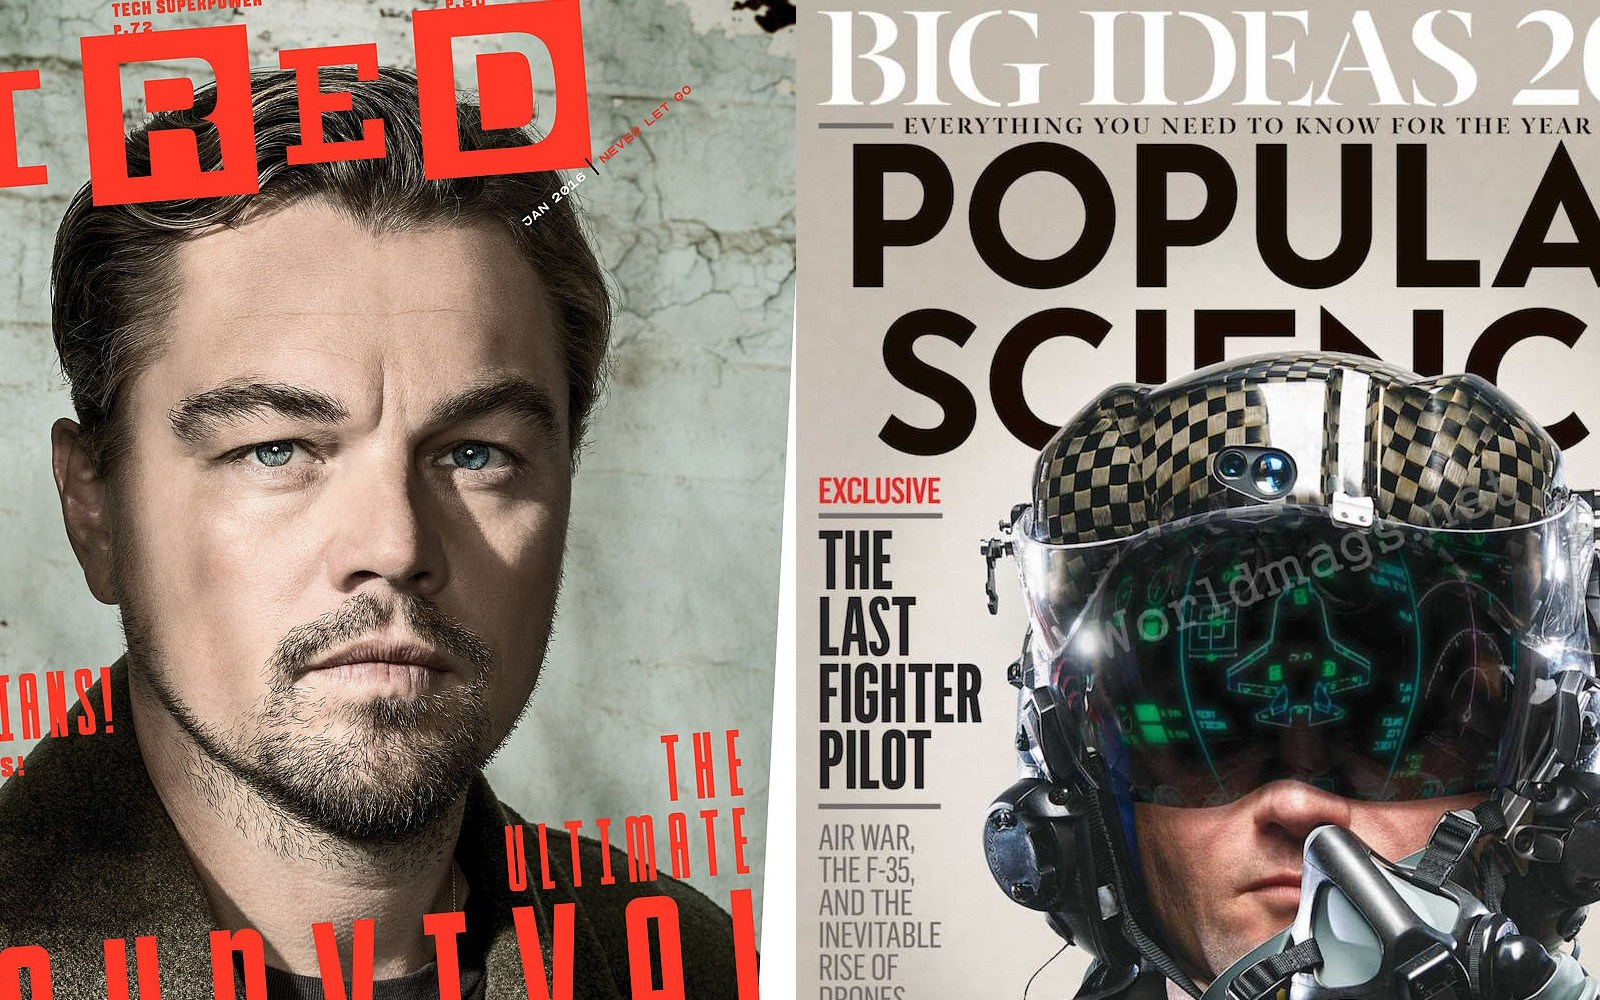 Multi-year/bundle magazine subs from $2/yr: Wine Enthusiast, Wired, Popular Science, more